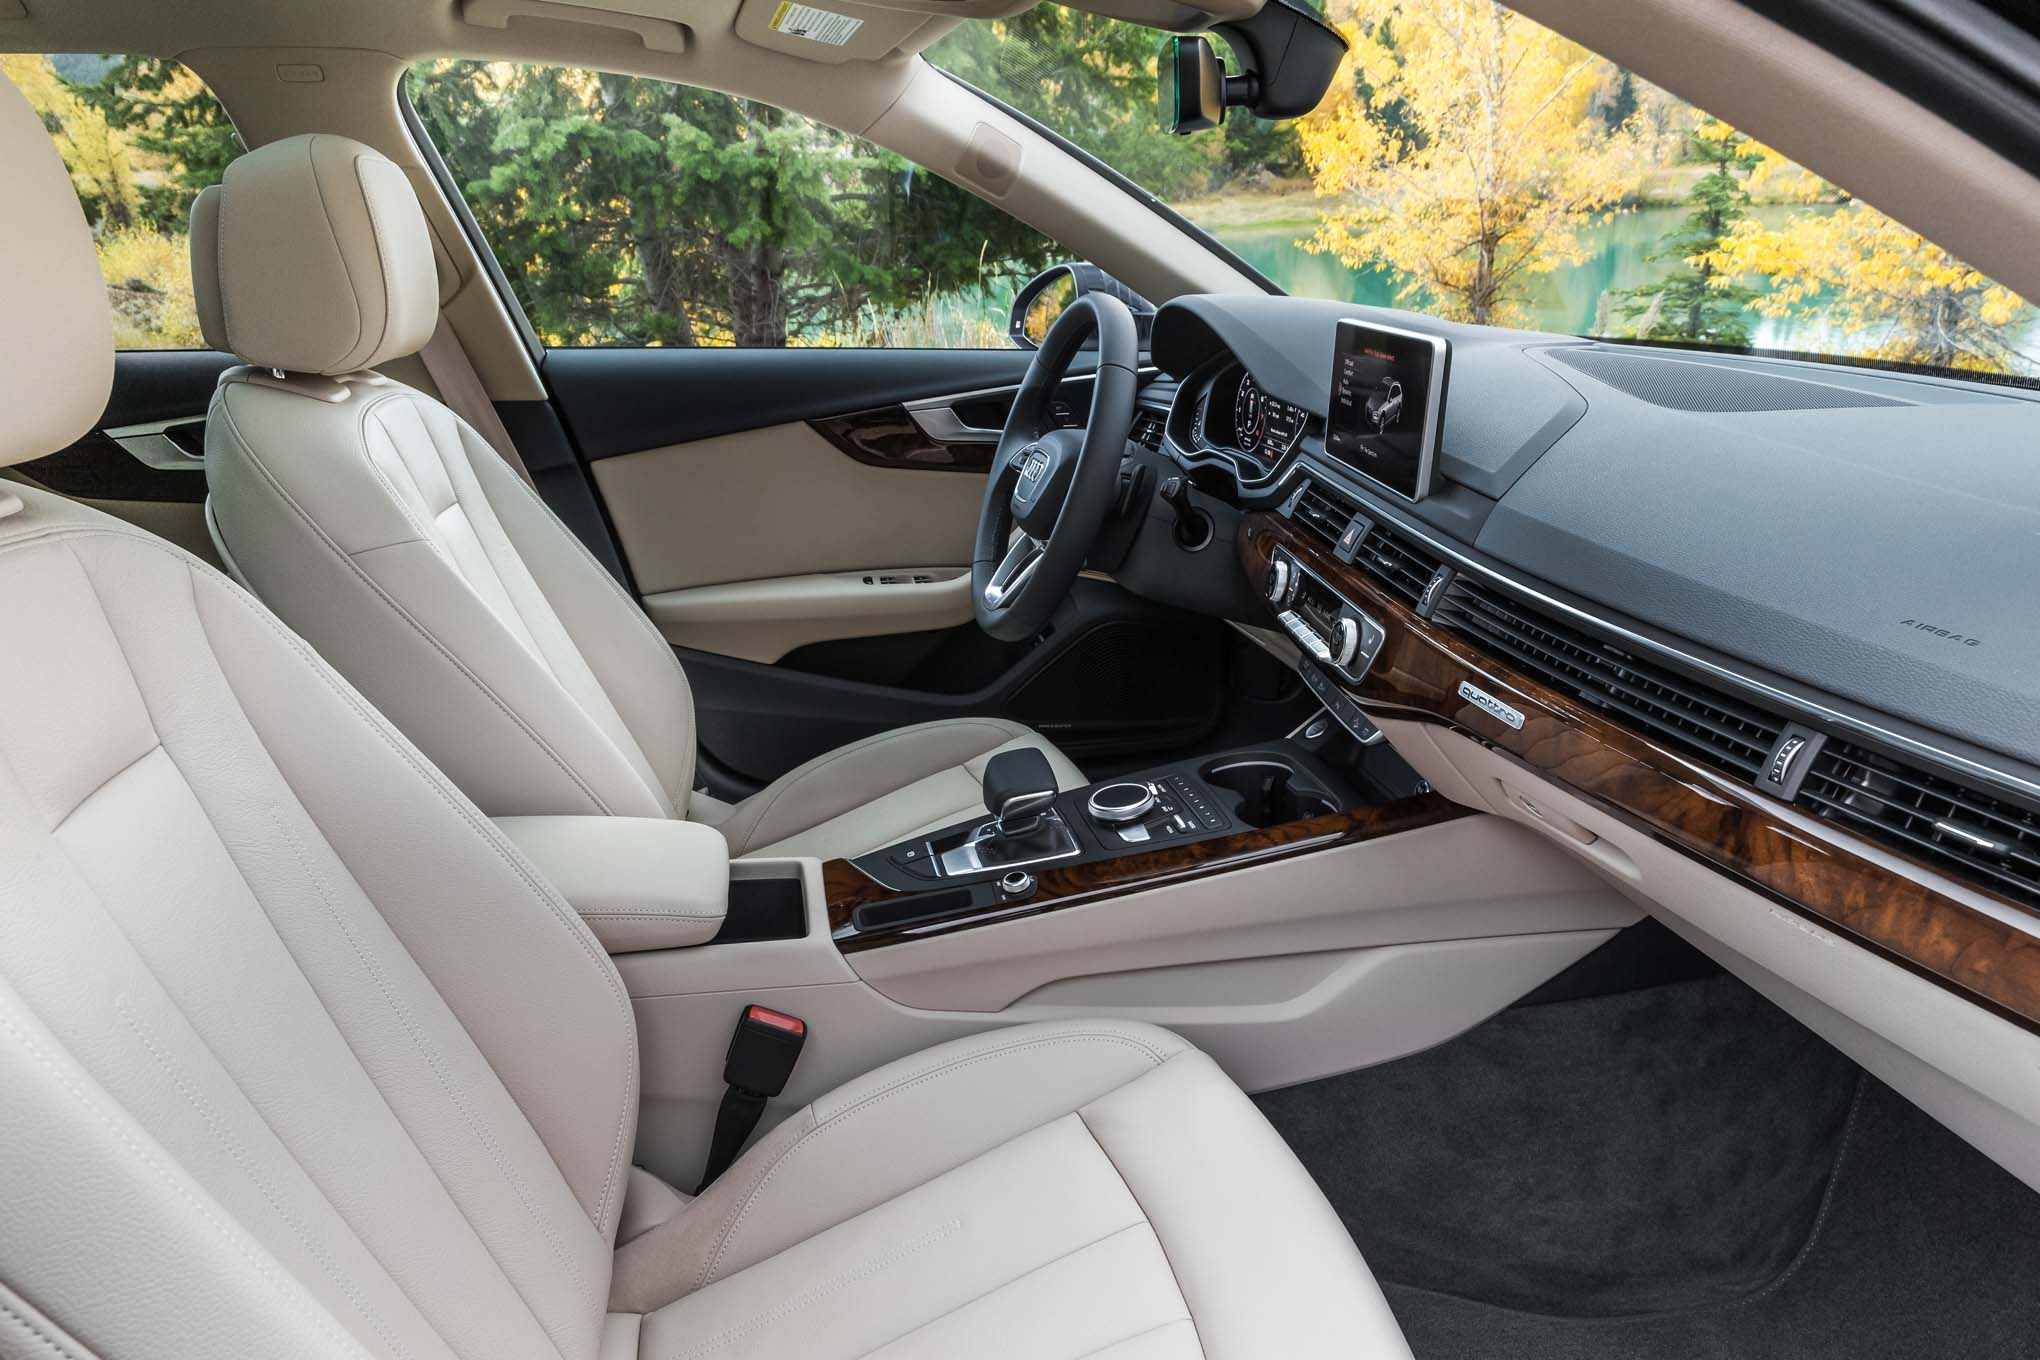 2017 Audi A4 Allroad  Interior Review  Car and Driver